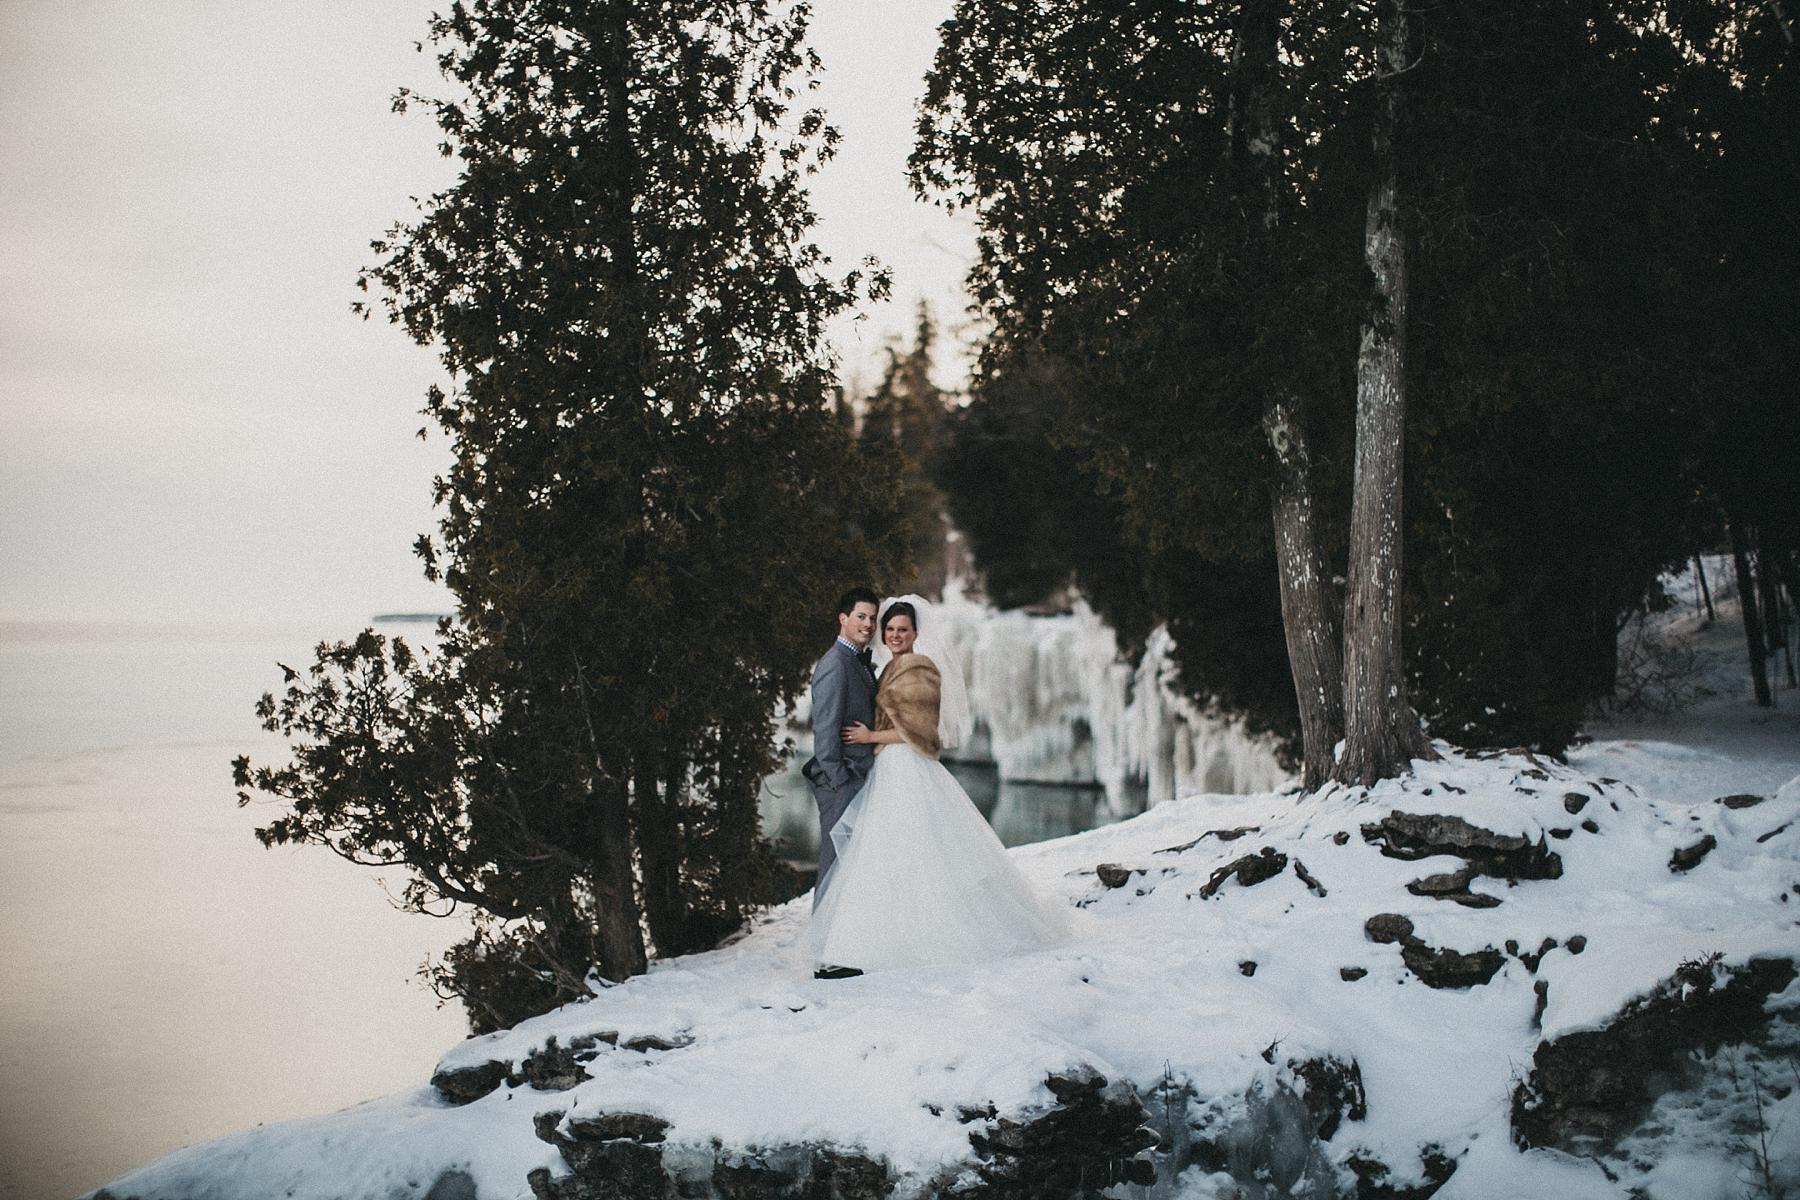 Ryan and Alyson - Real Weddings by The Groomsman Suit